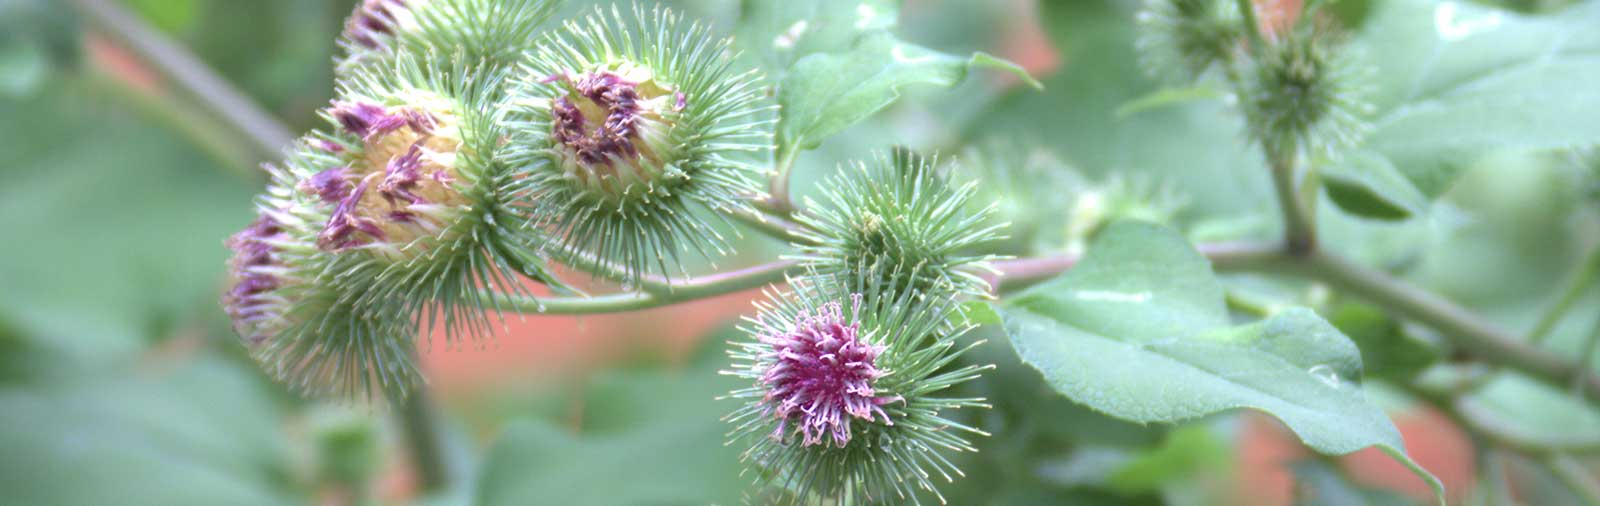 Greater Burdock - Arctium lappa L.